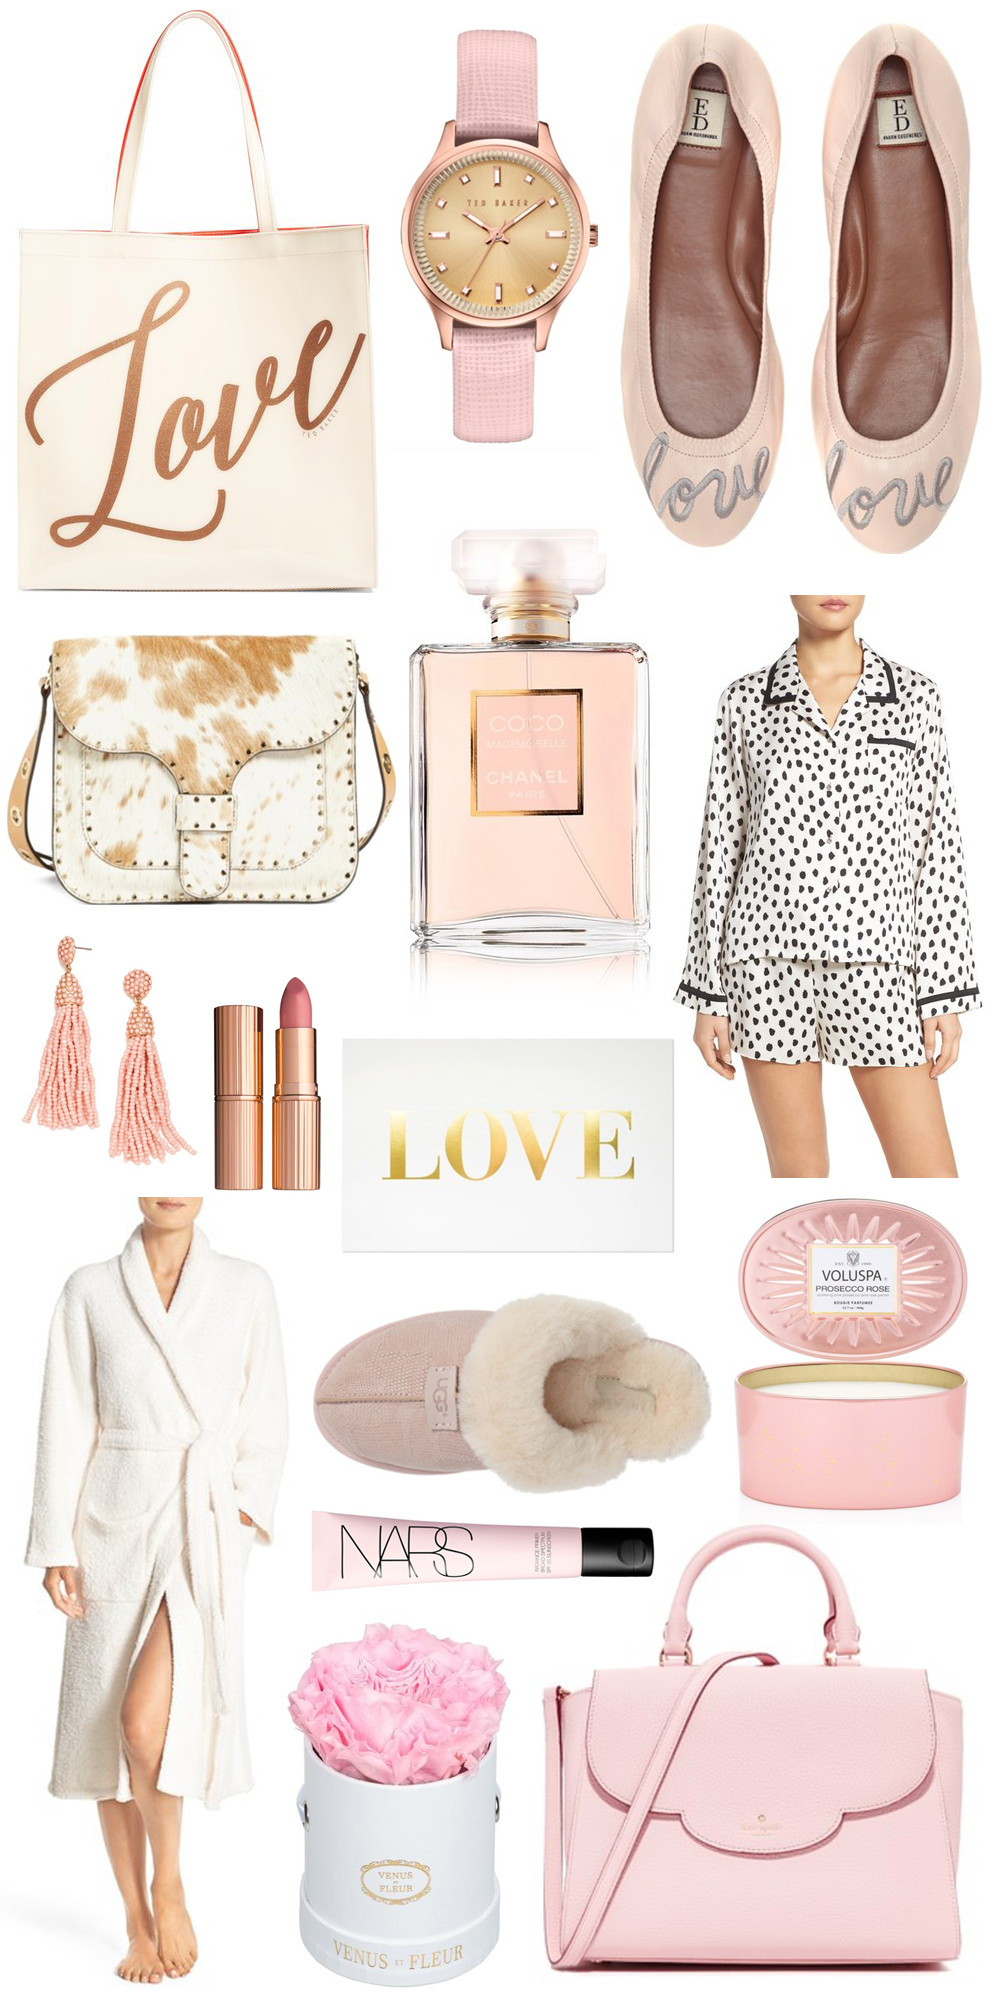 Great Valentines Gift Ideas For Her  Gifts For Her Valentine s Day Money Can Buy Lipstick